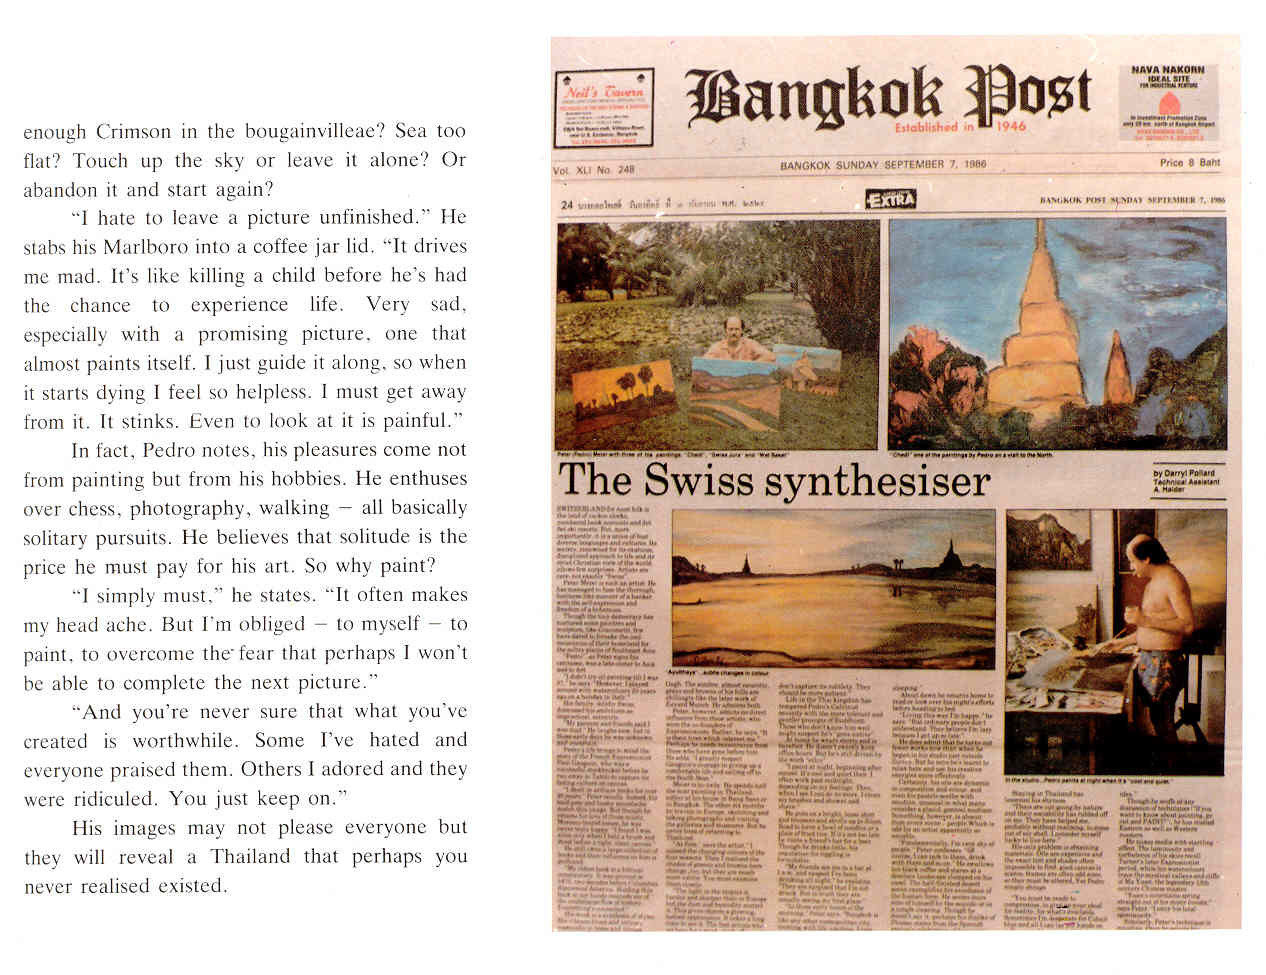 Pedro Meier Multimedia Artist newspaper article in »Bangkok Post«: – »The Swiss synthesiser« – Paintings »Scenes of Thailand« (September 7. 1986) by Darryl Pollard – Exhibition Narai Gallery Bangkok – Opening by the Embassy of Switzerland  - 4